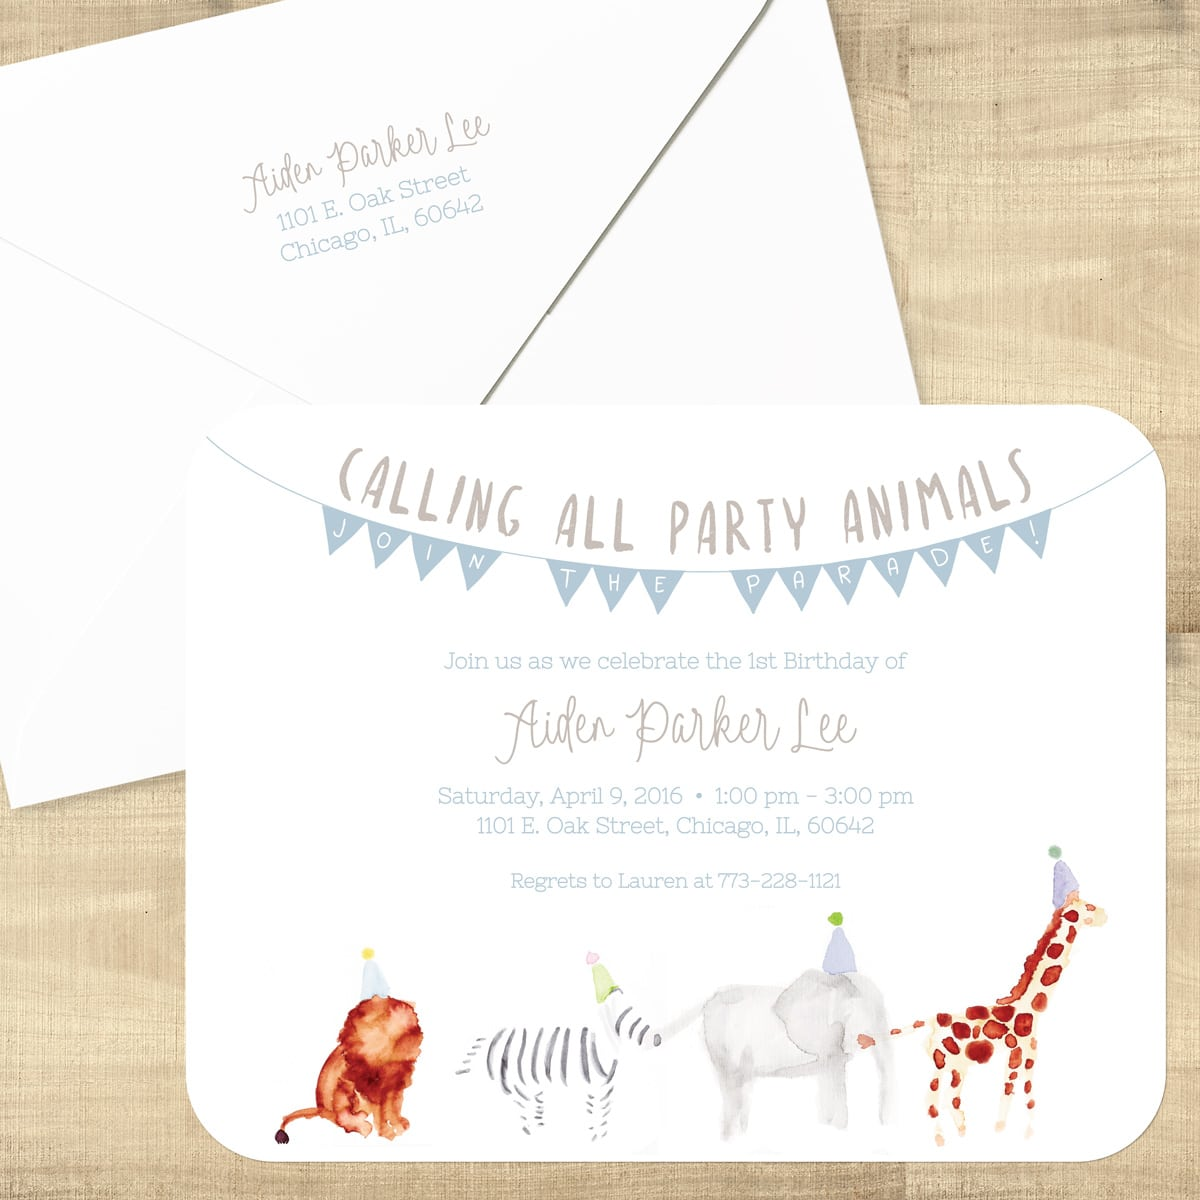 Party Animals Birthday Invitation